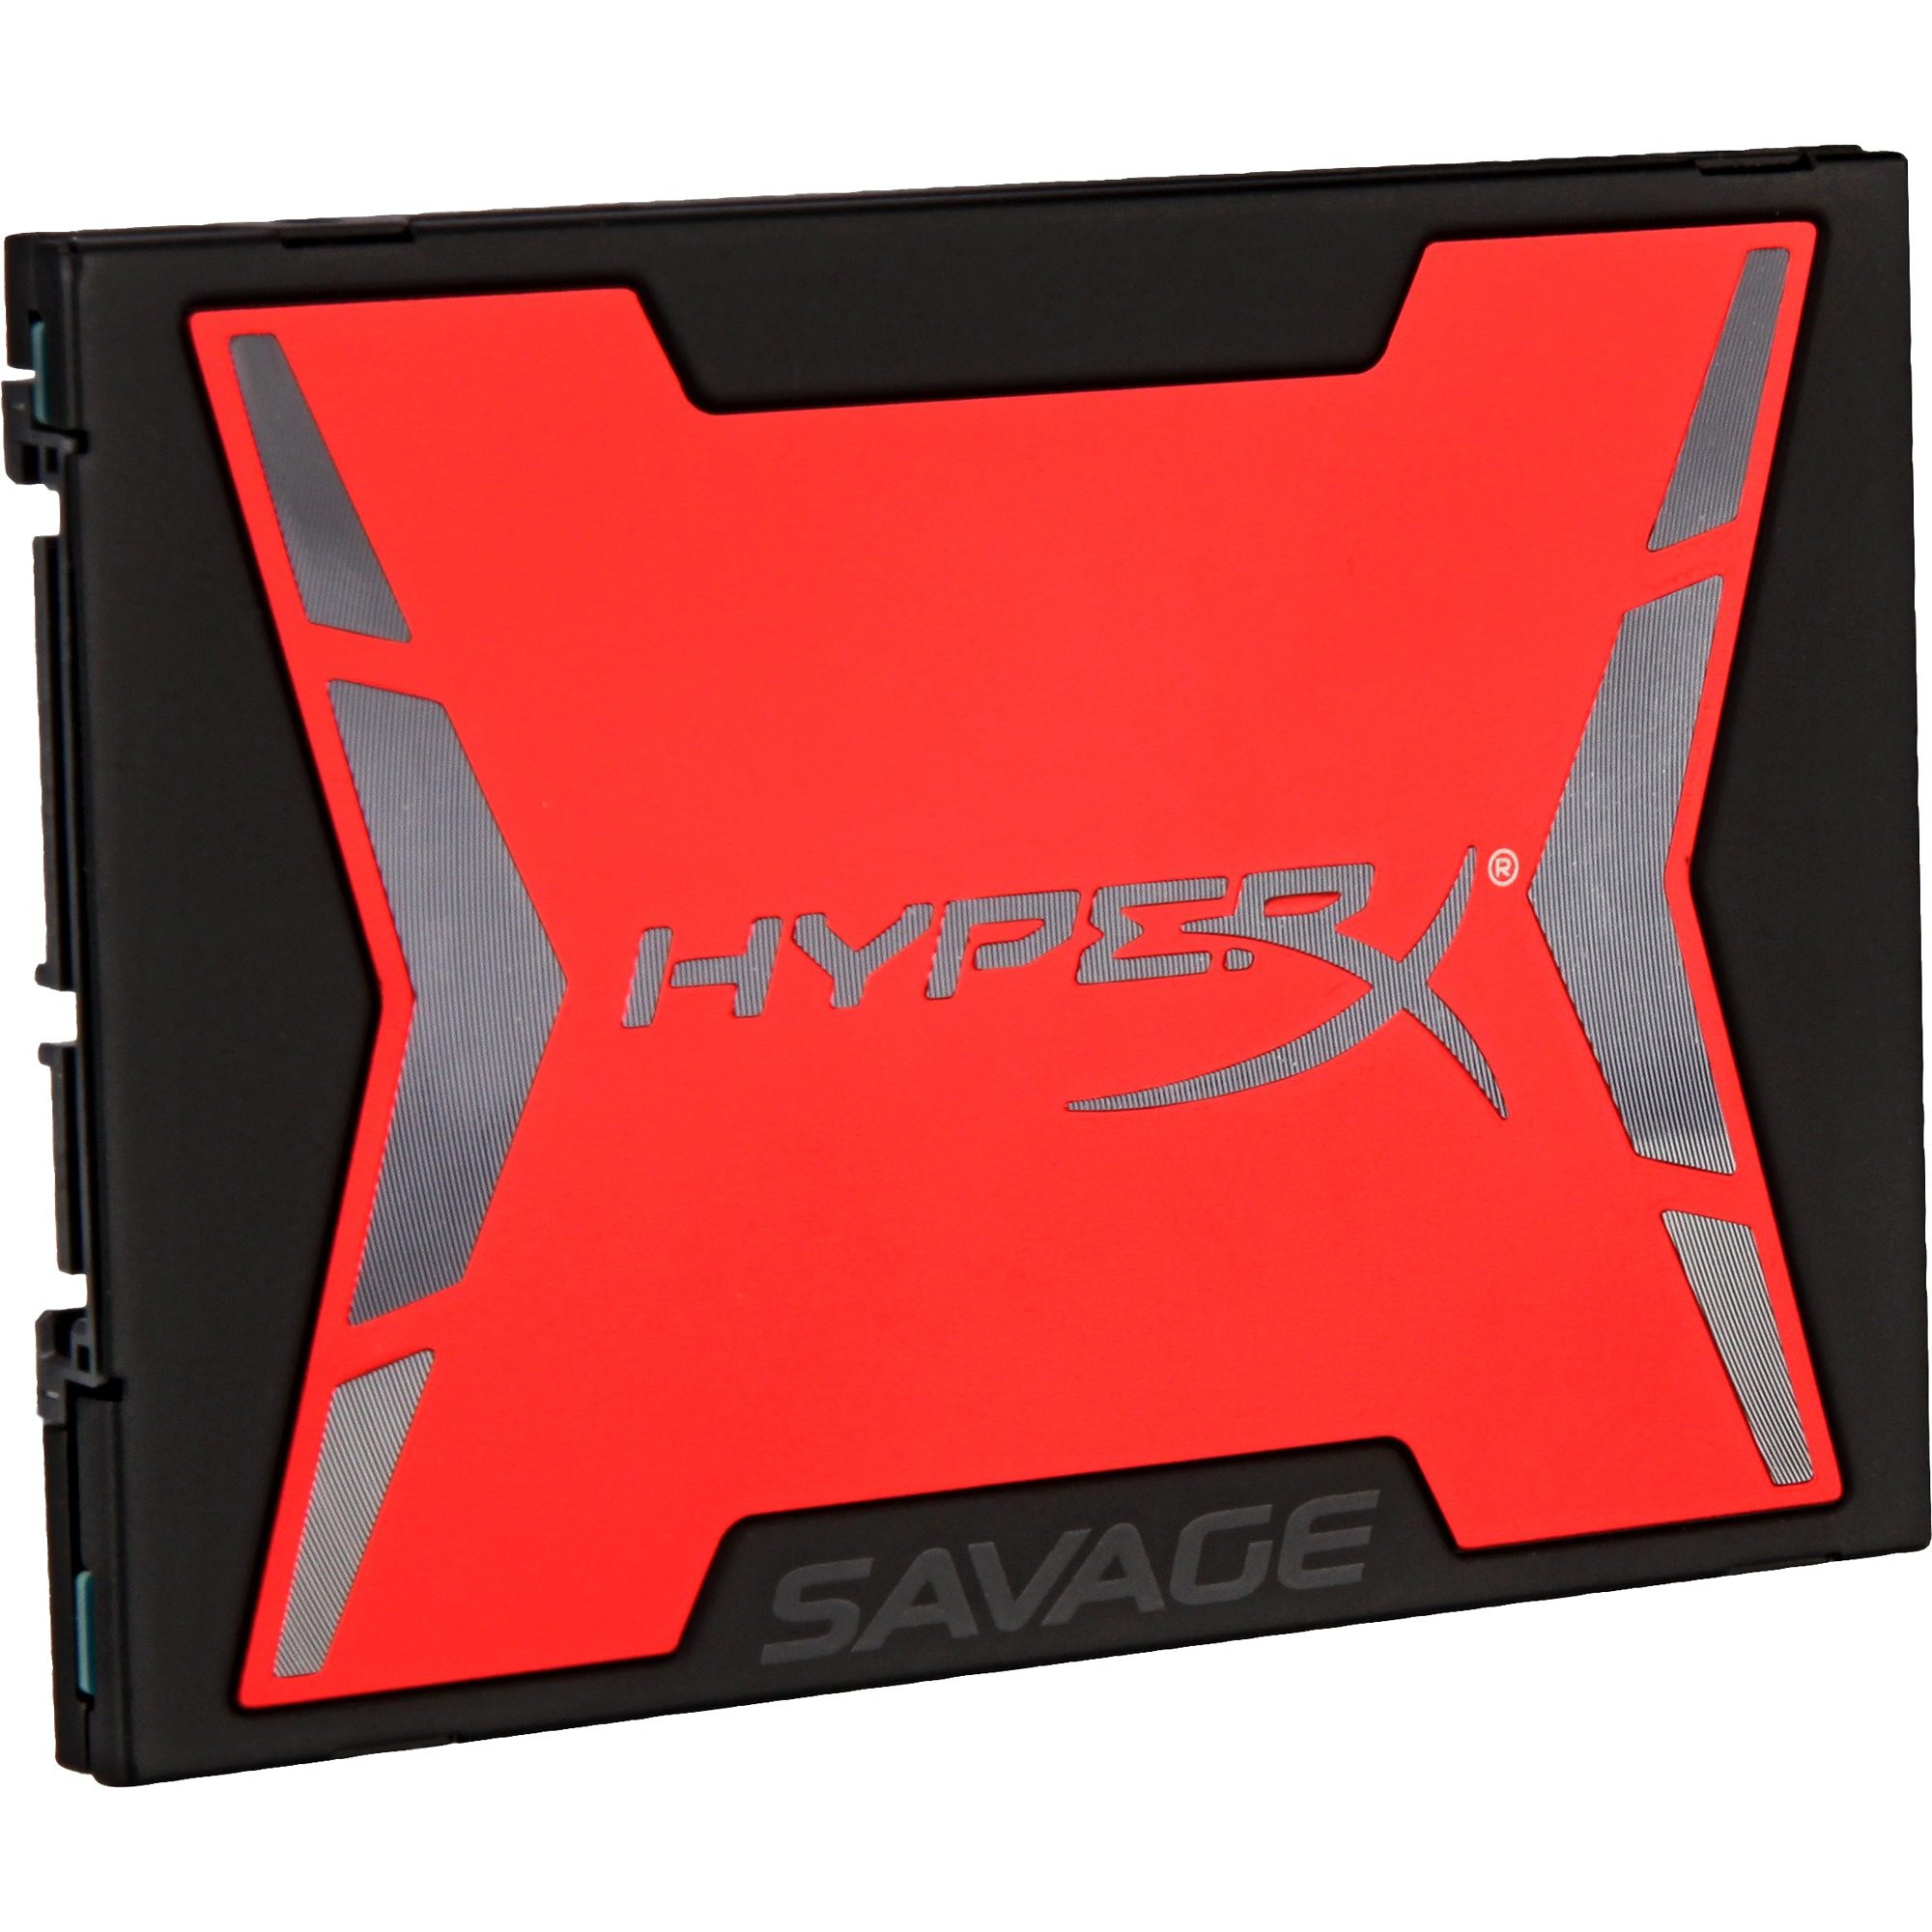 Kingston HyperX Solid State Drive »SHSS37A/960G 960 GB«